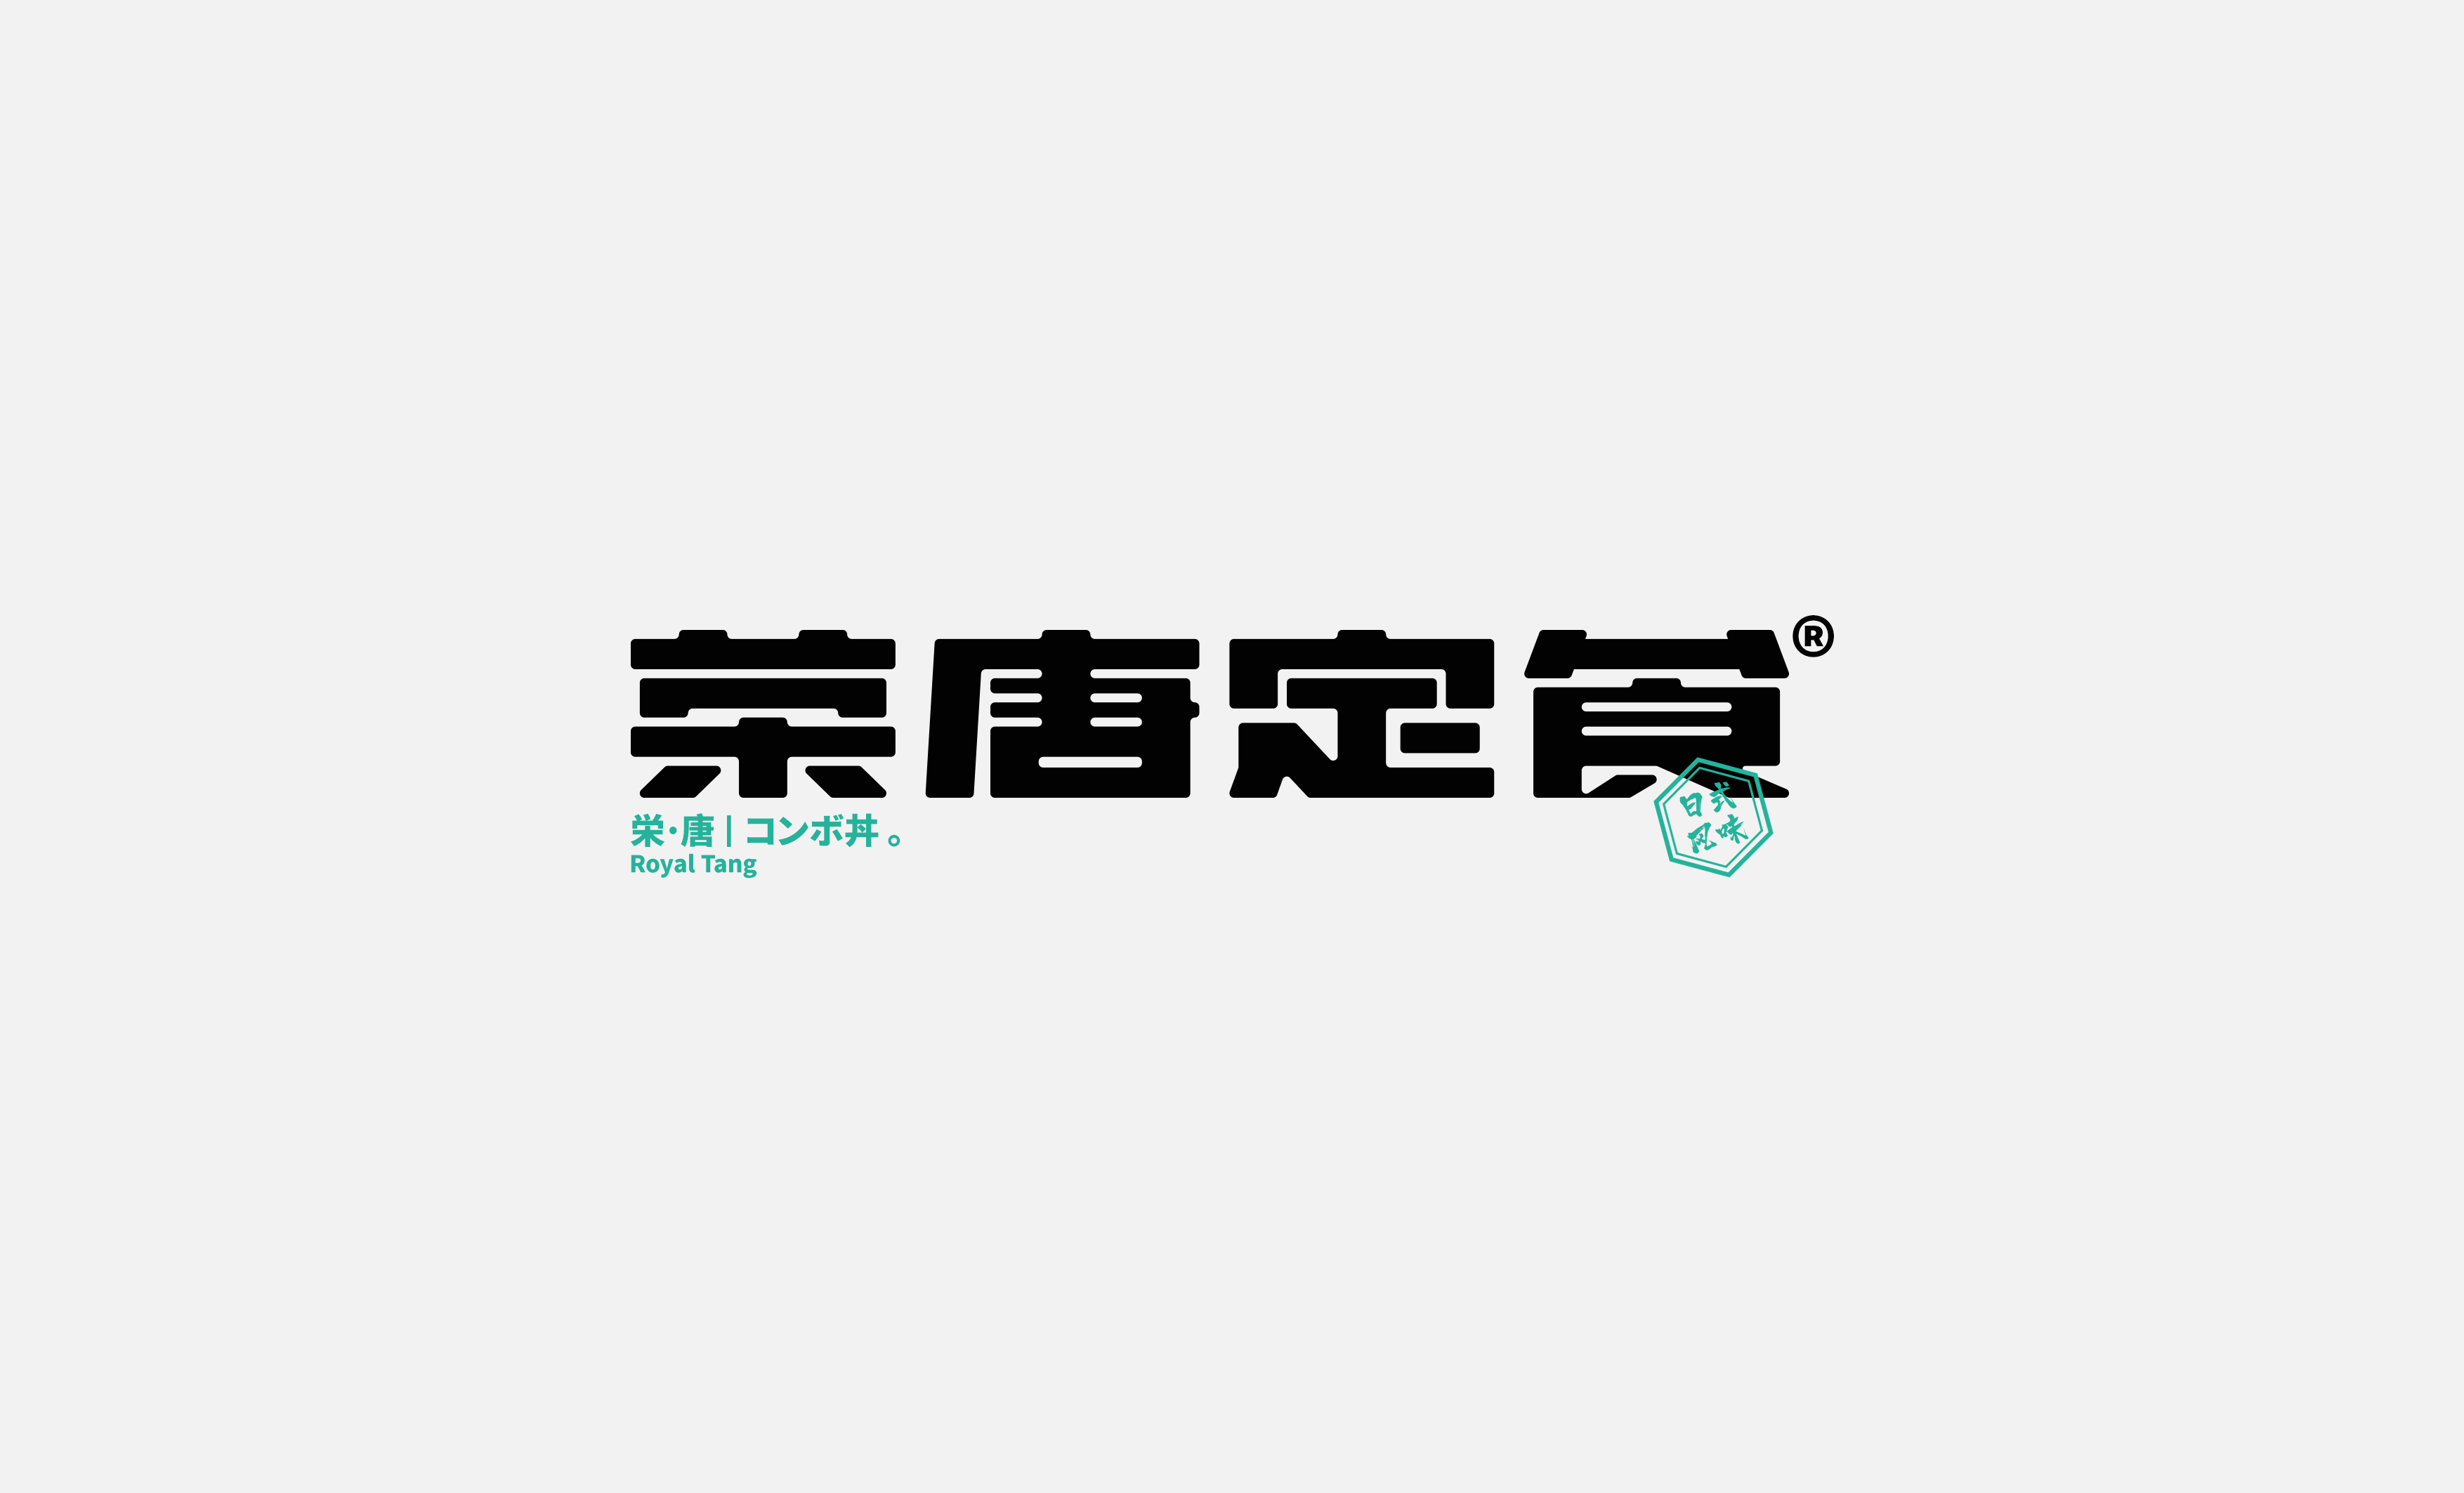 16P Collection of the latest Chinese font design schemes in 2021 #.554